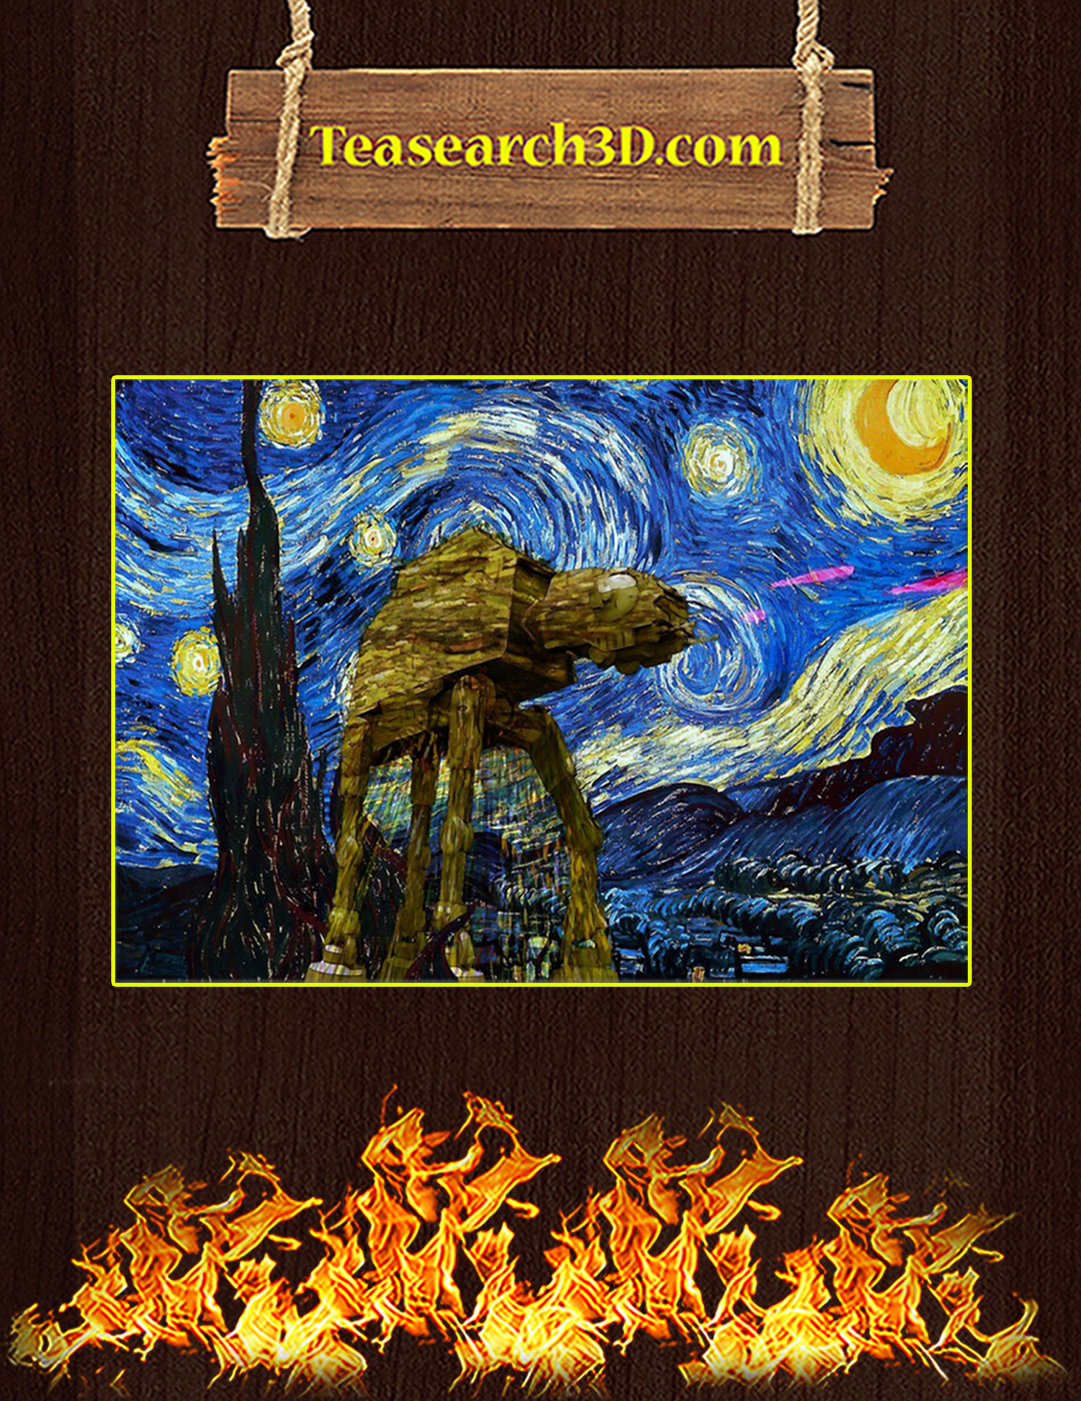 All Terrain Armored Transport starry night van gogh poster A2